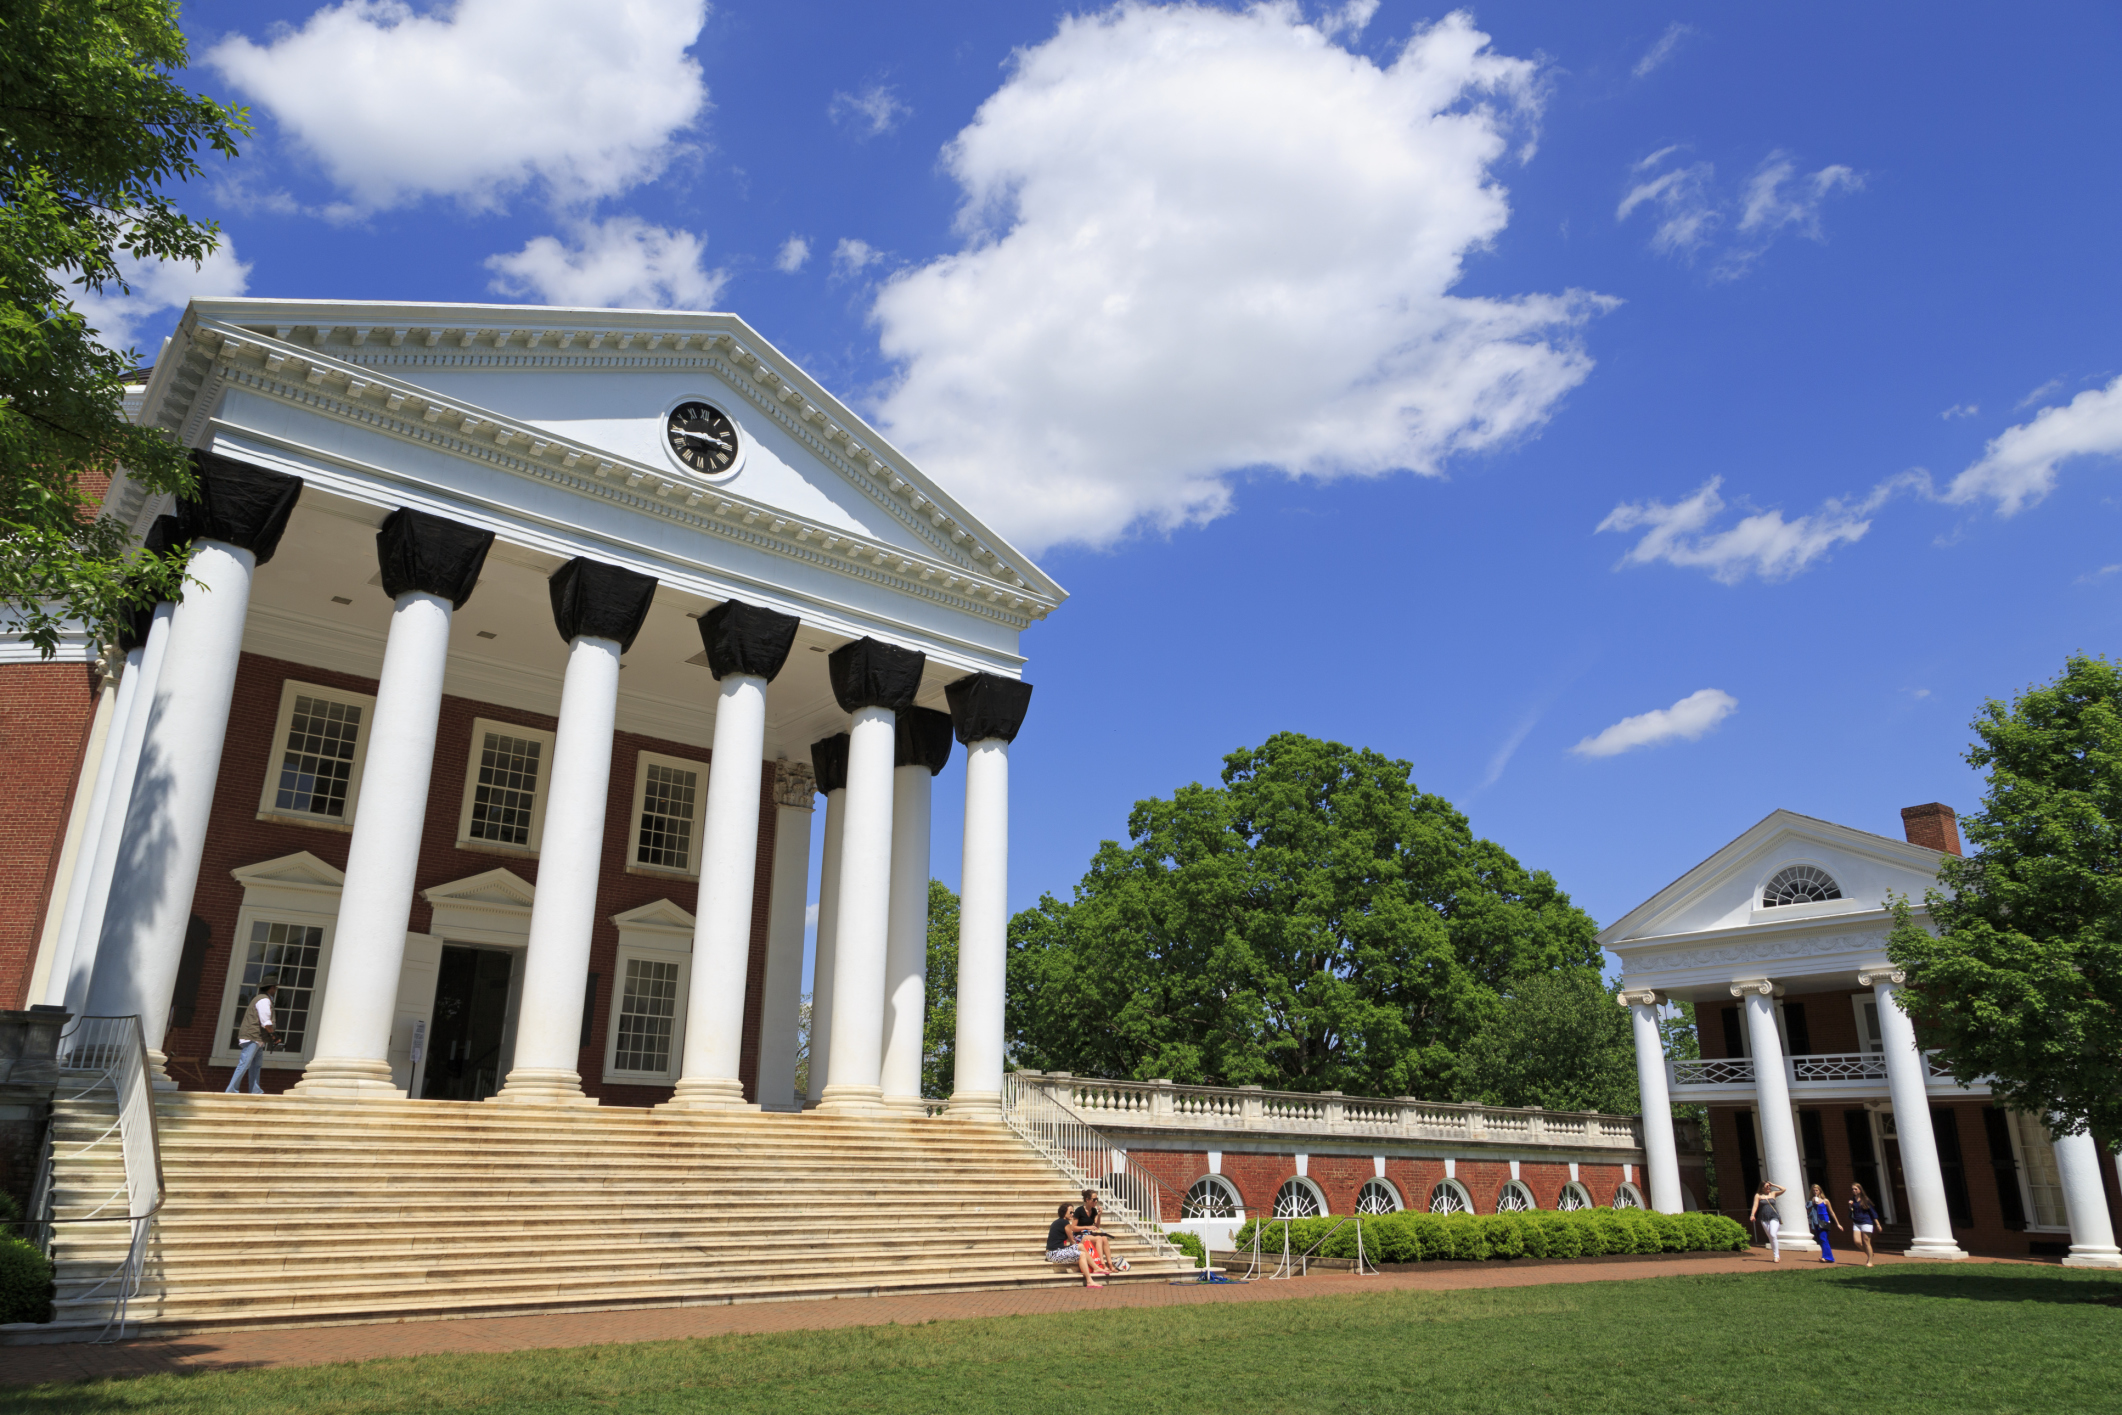 us news best colleges - HD2122×1415